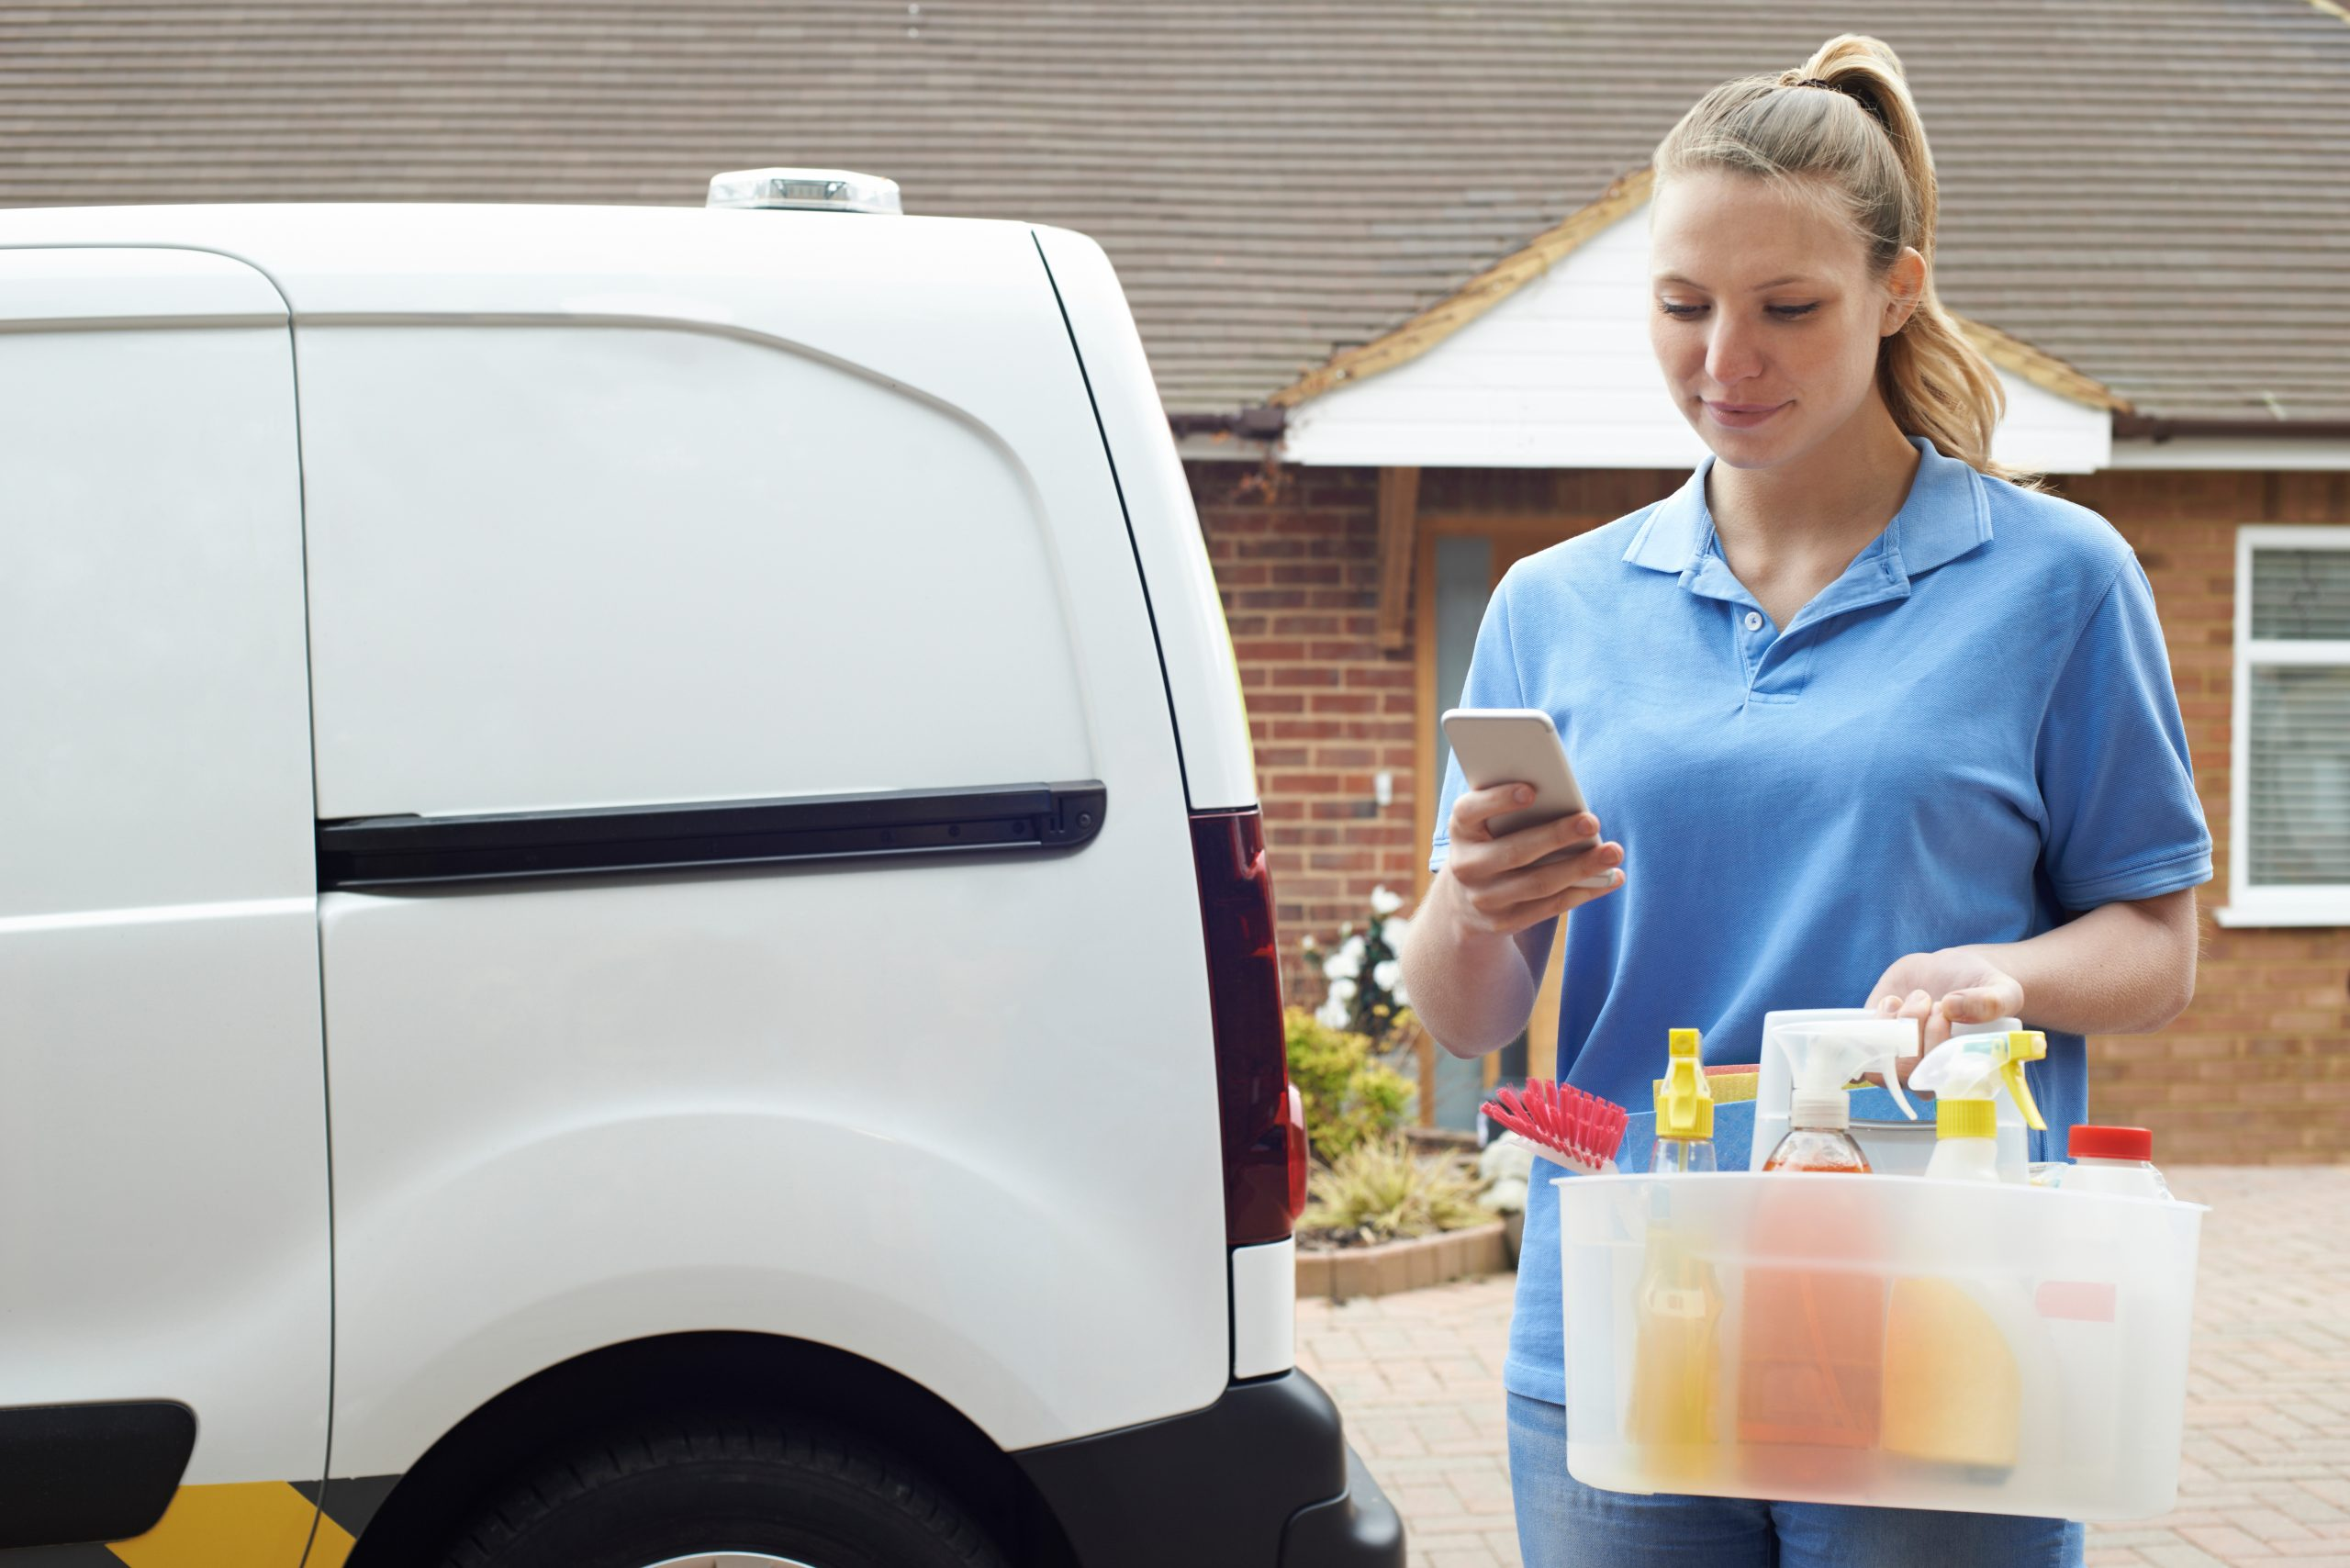 7. Market Your Cleaning Business